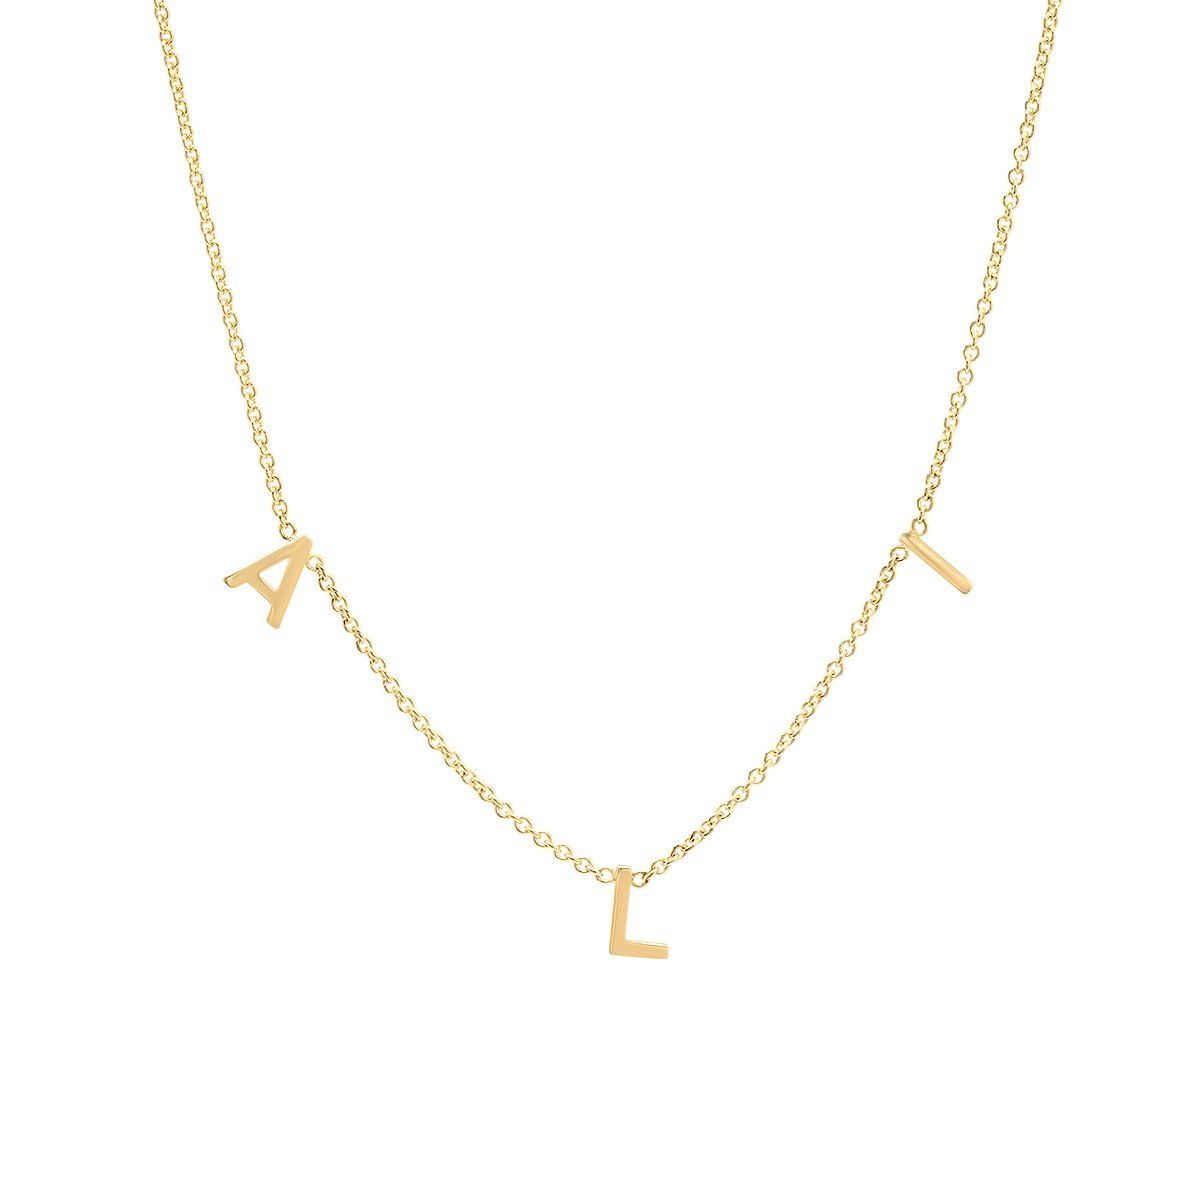 Spaced Letter Necklace for Kids - 14k Yellow Gold